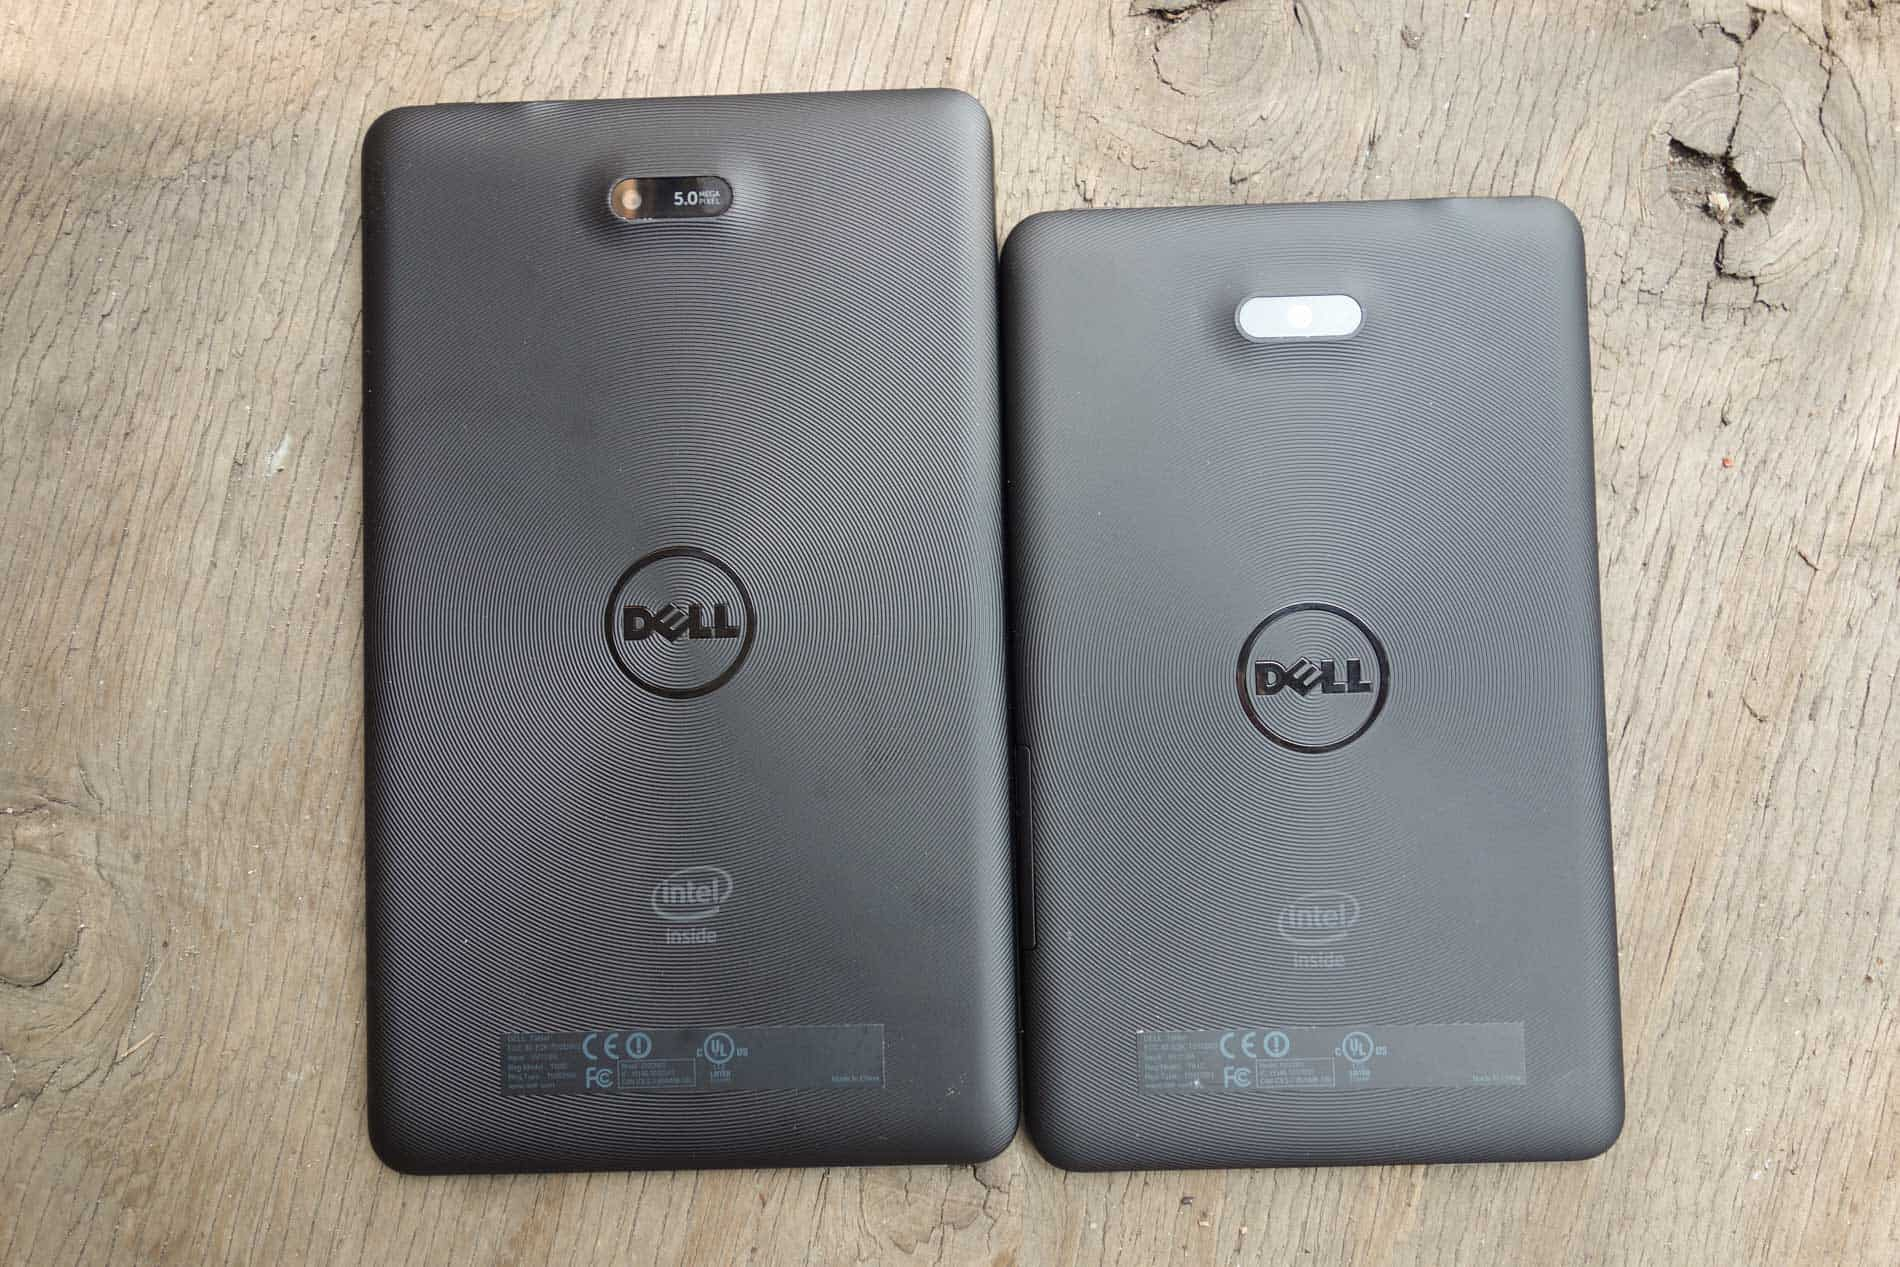 Dell-Venue-Review-AH-5